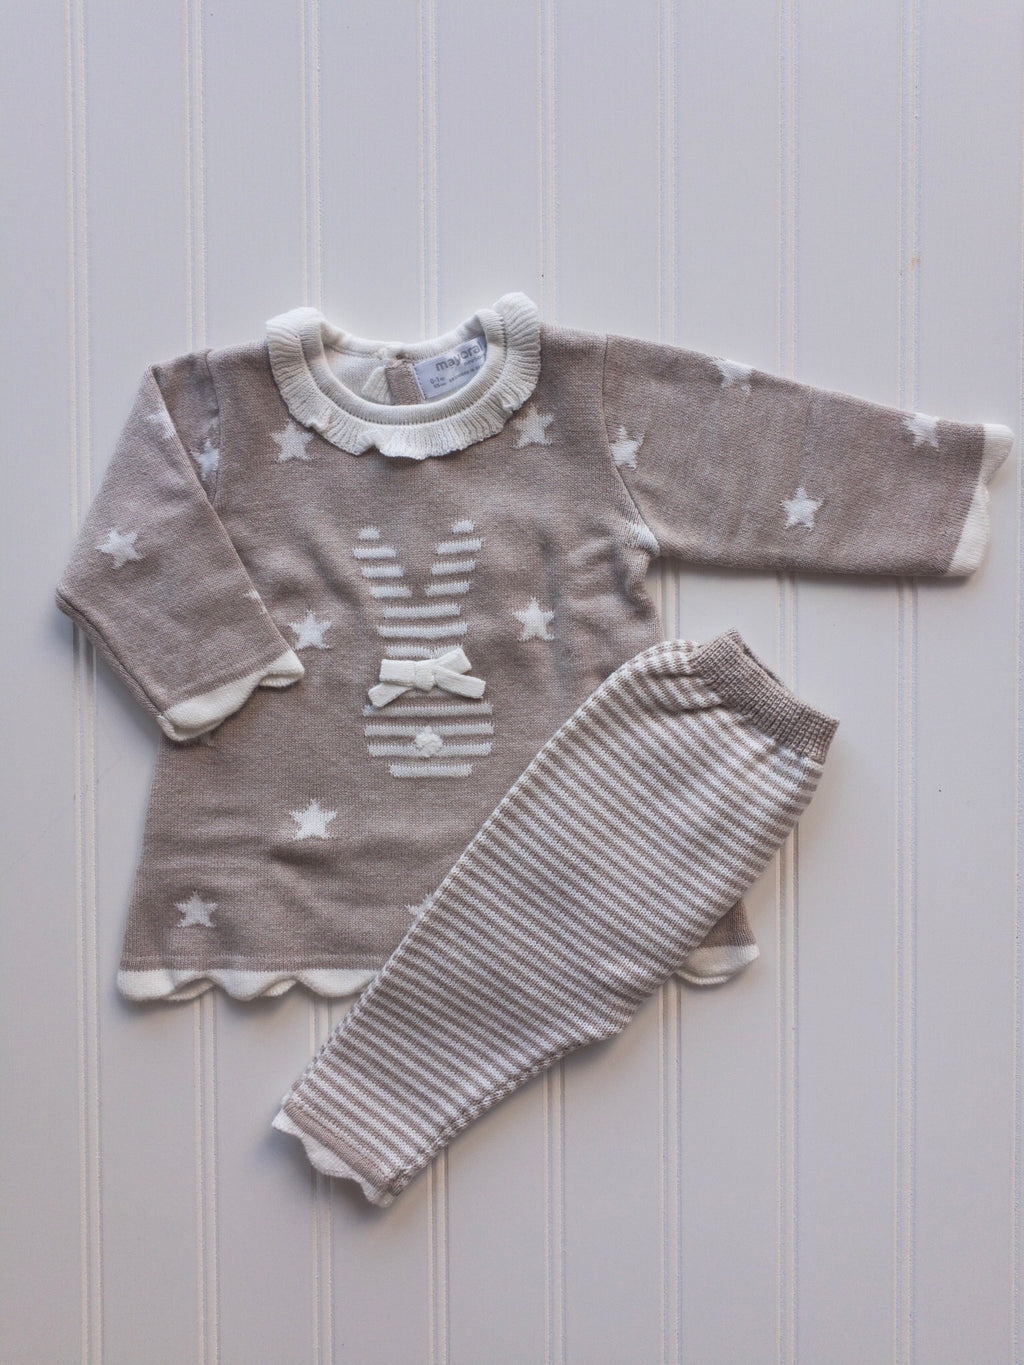 Beige and Cream Bunny Knit Dress & Leggings Set